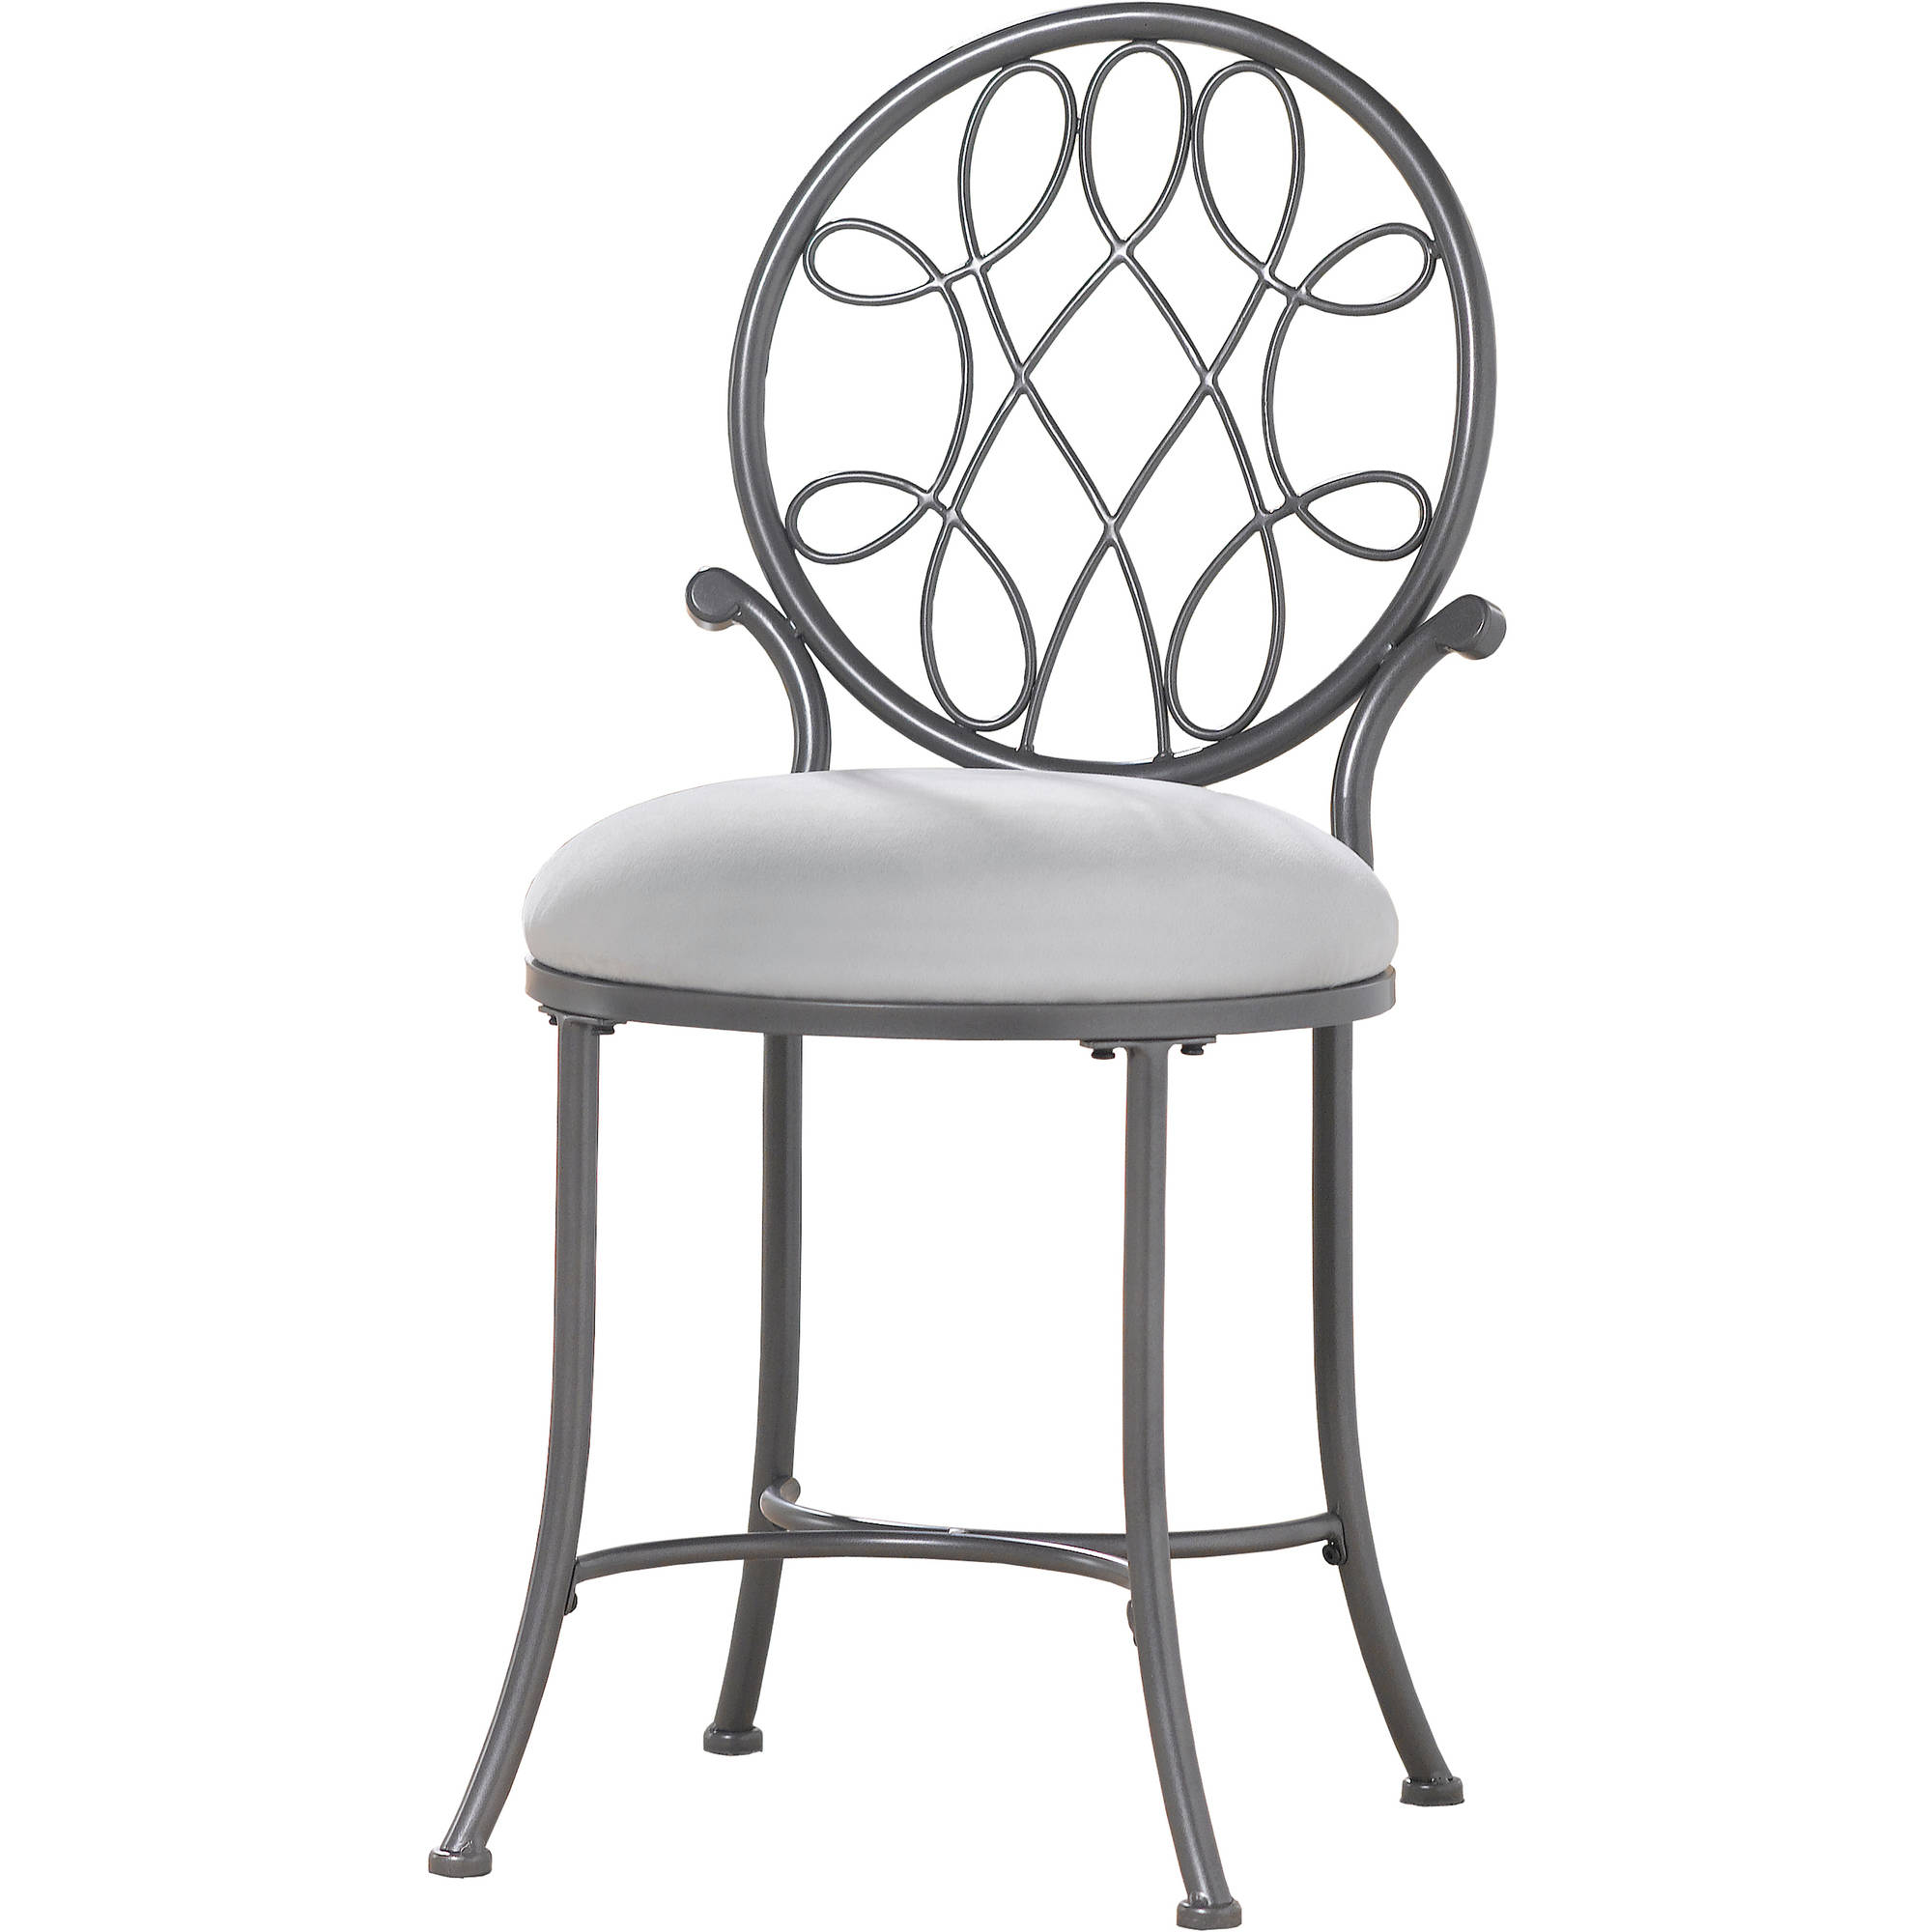 Metal Vanity Stool Gray Decorative Knot Motif Padded Seat Bedroom Bathroom Chair